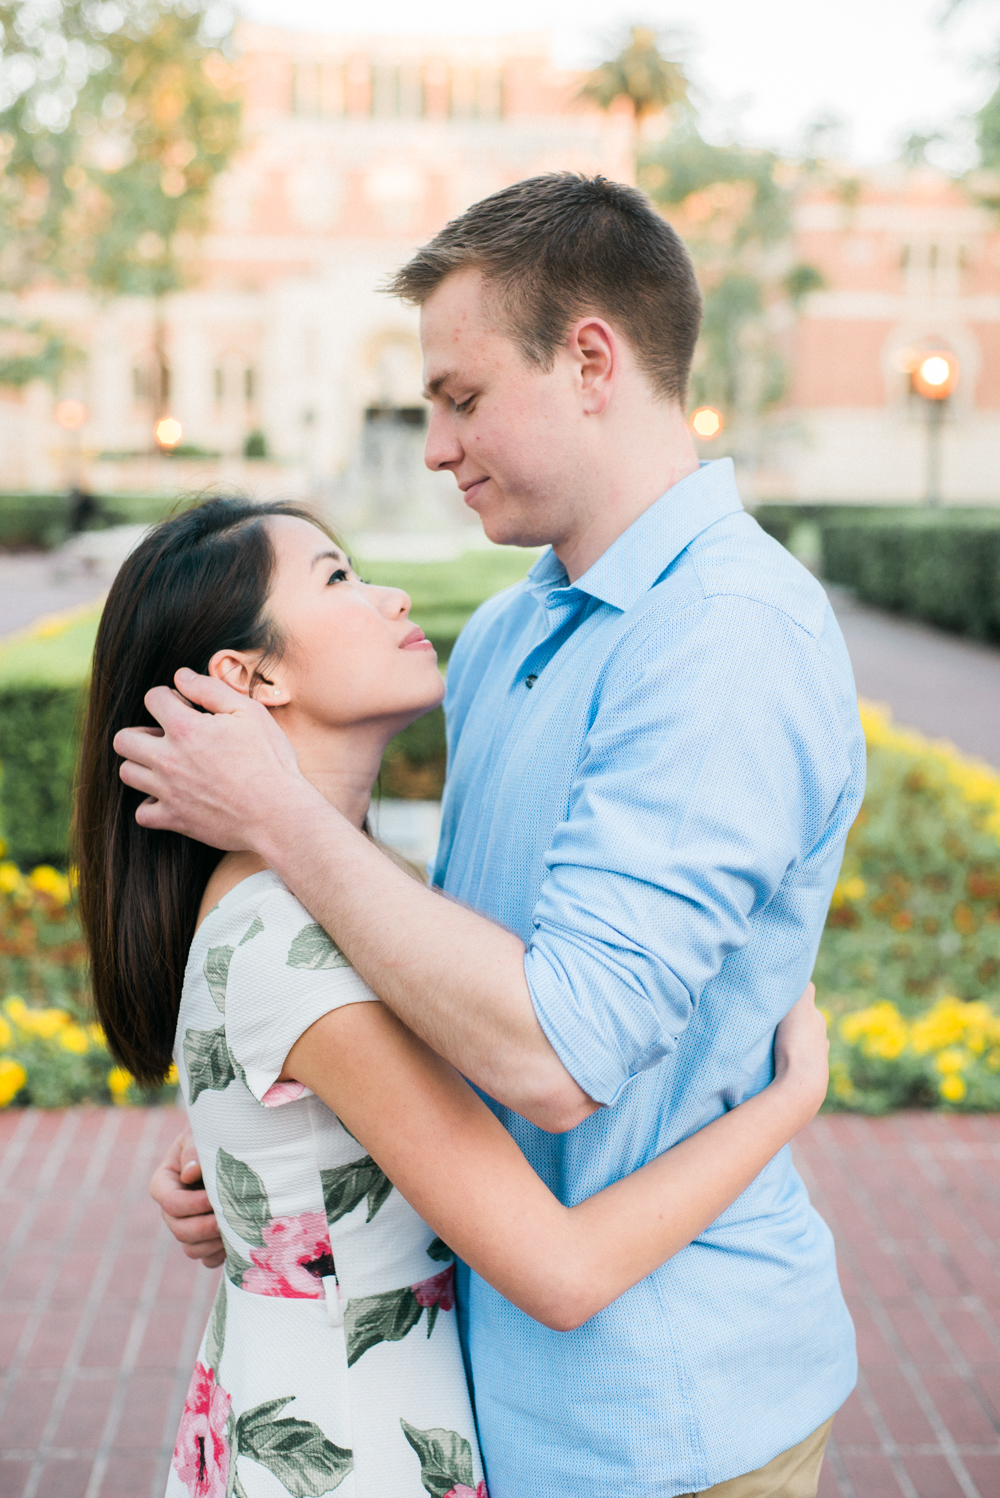 usc_engagement_session_los_angeles_wedding_photography-9.jpg